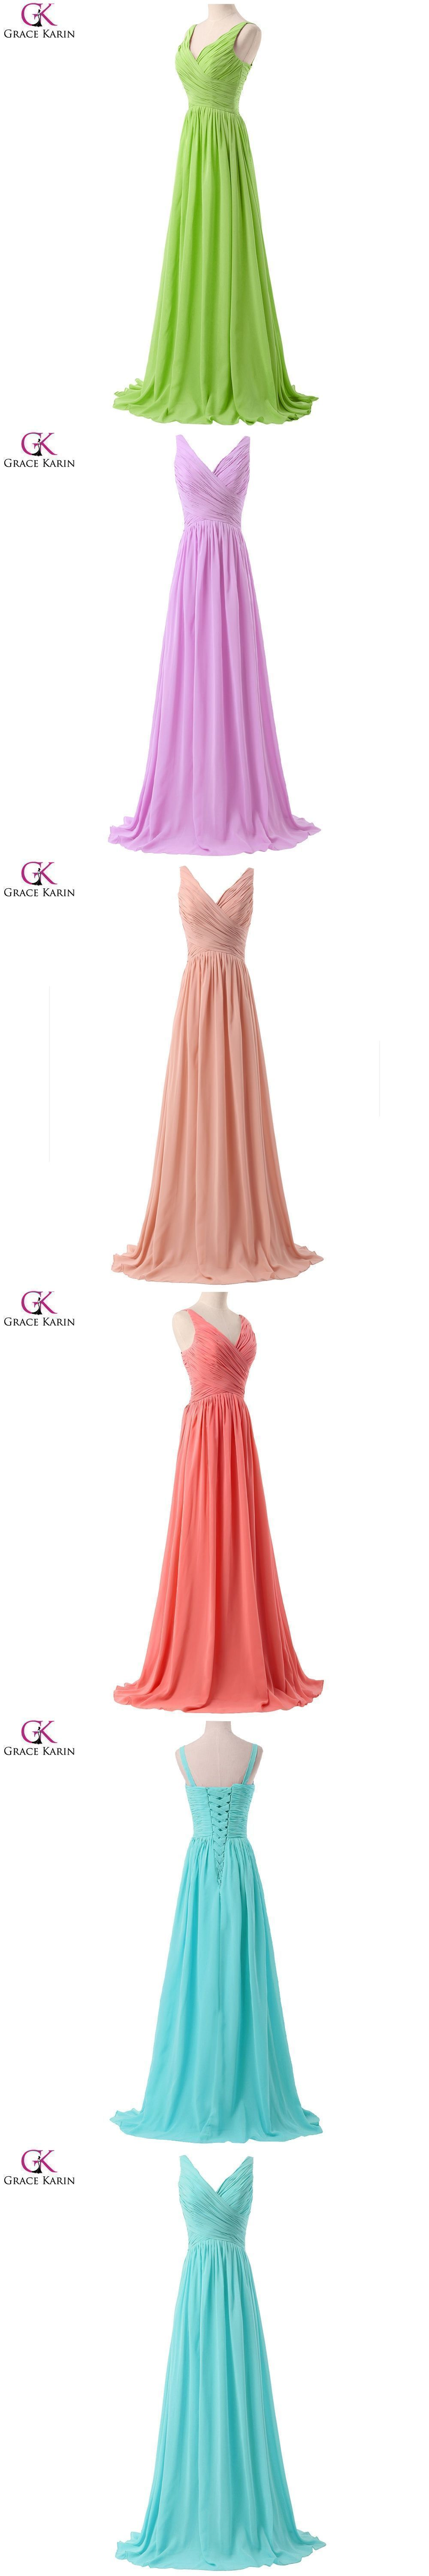 Grace karin aqua blue bridesmaid dresses blush pink red purple mint